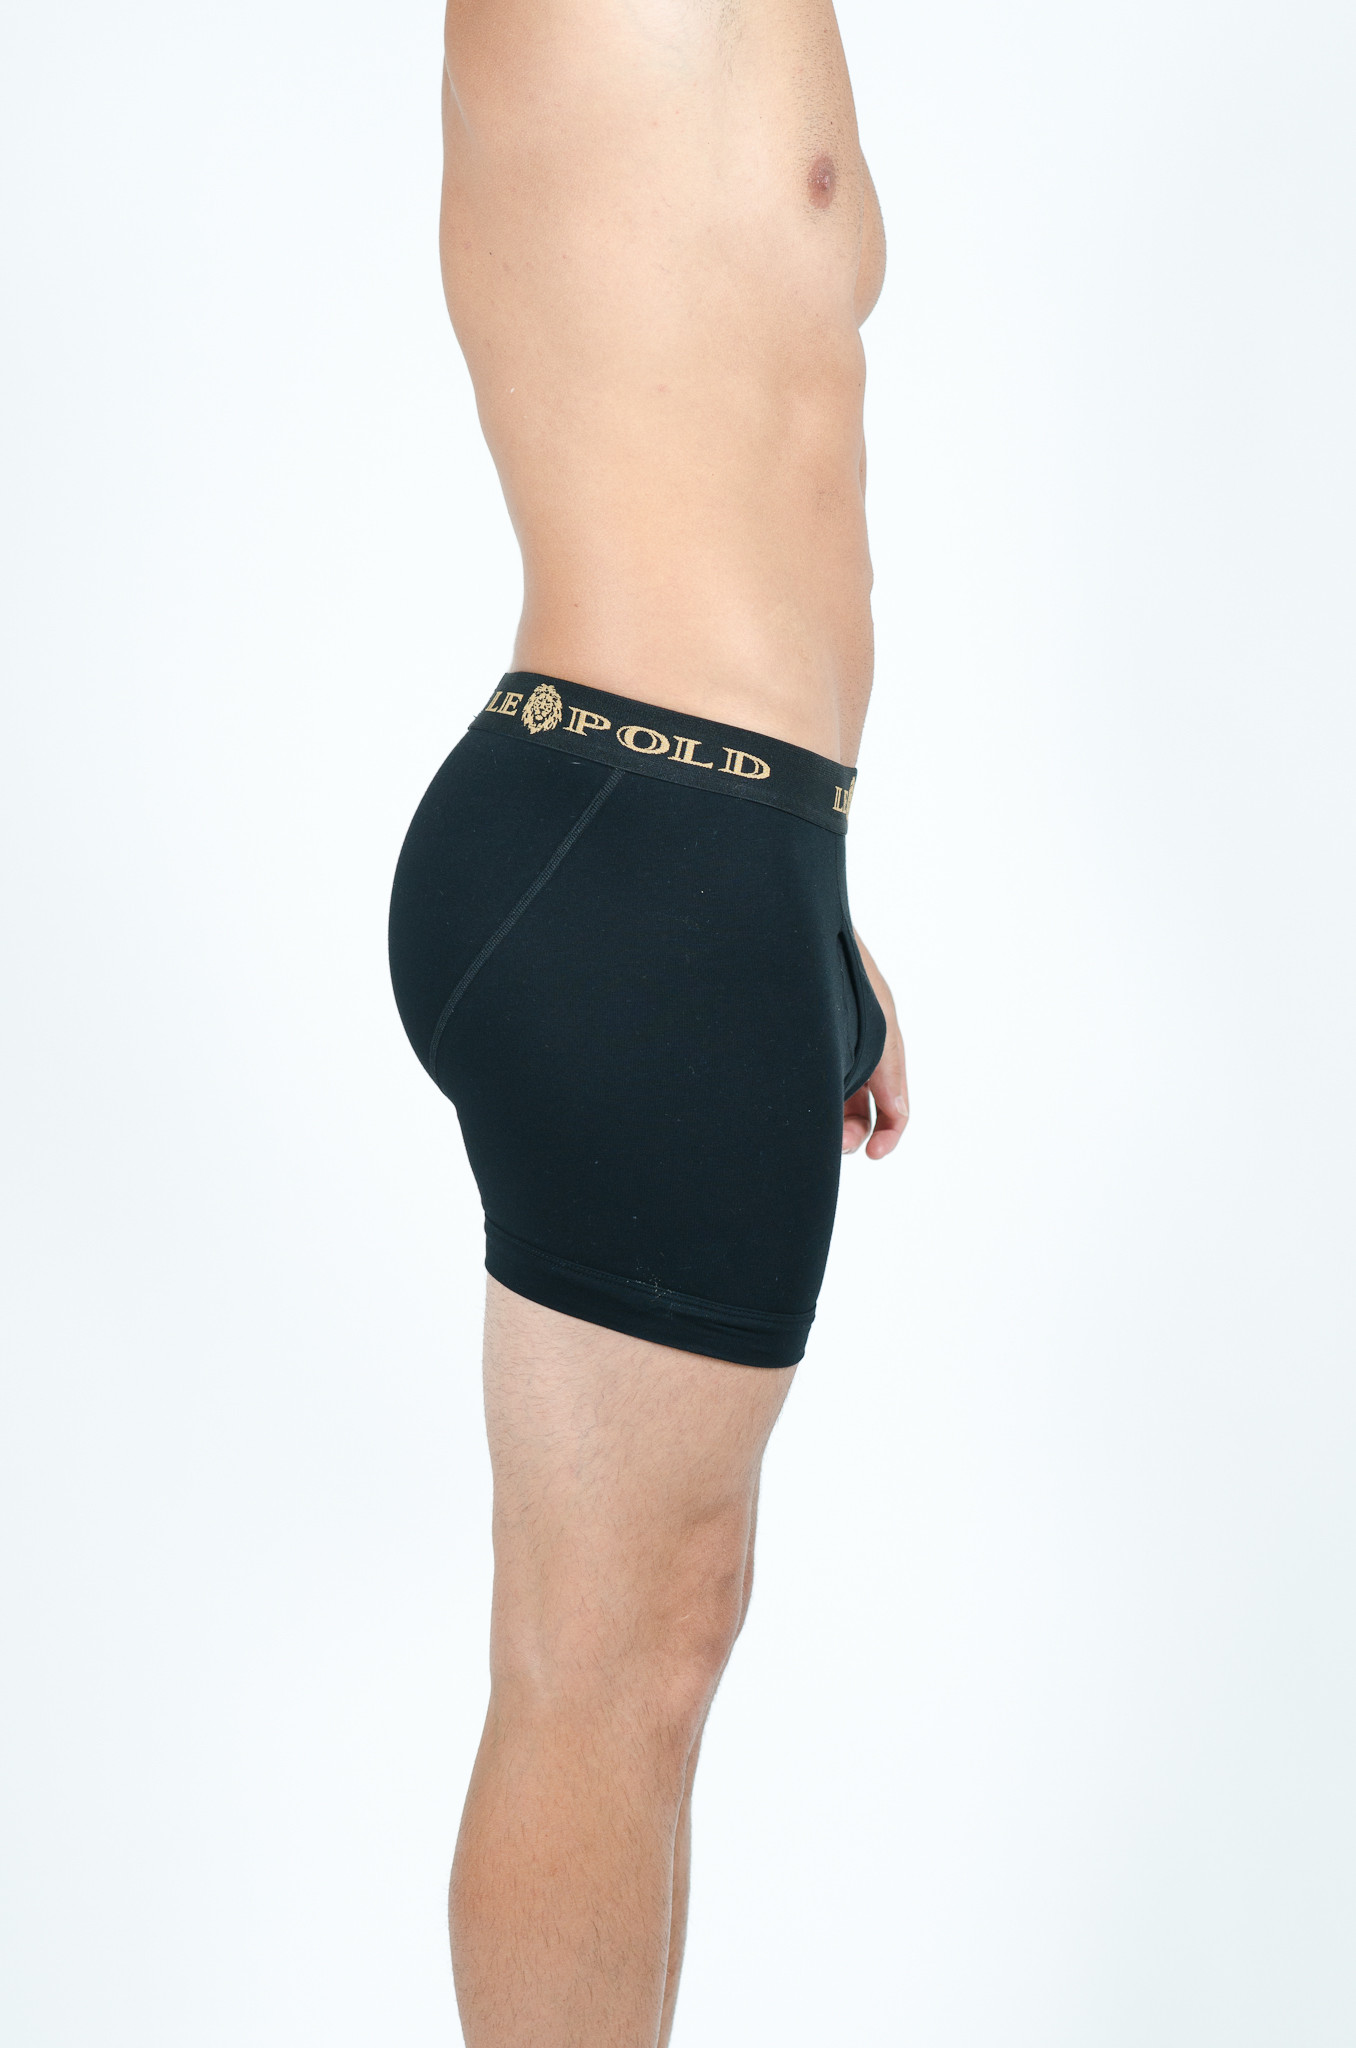 d1a1b7b9432 Two-pack Black Boxer Briefs (Free Shipping)